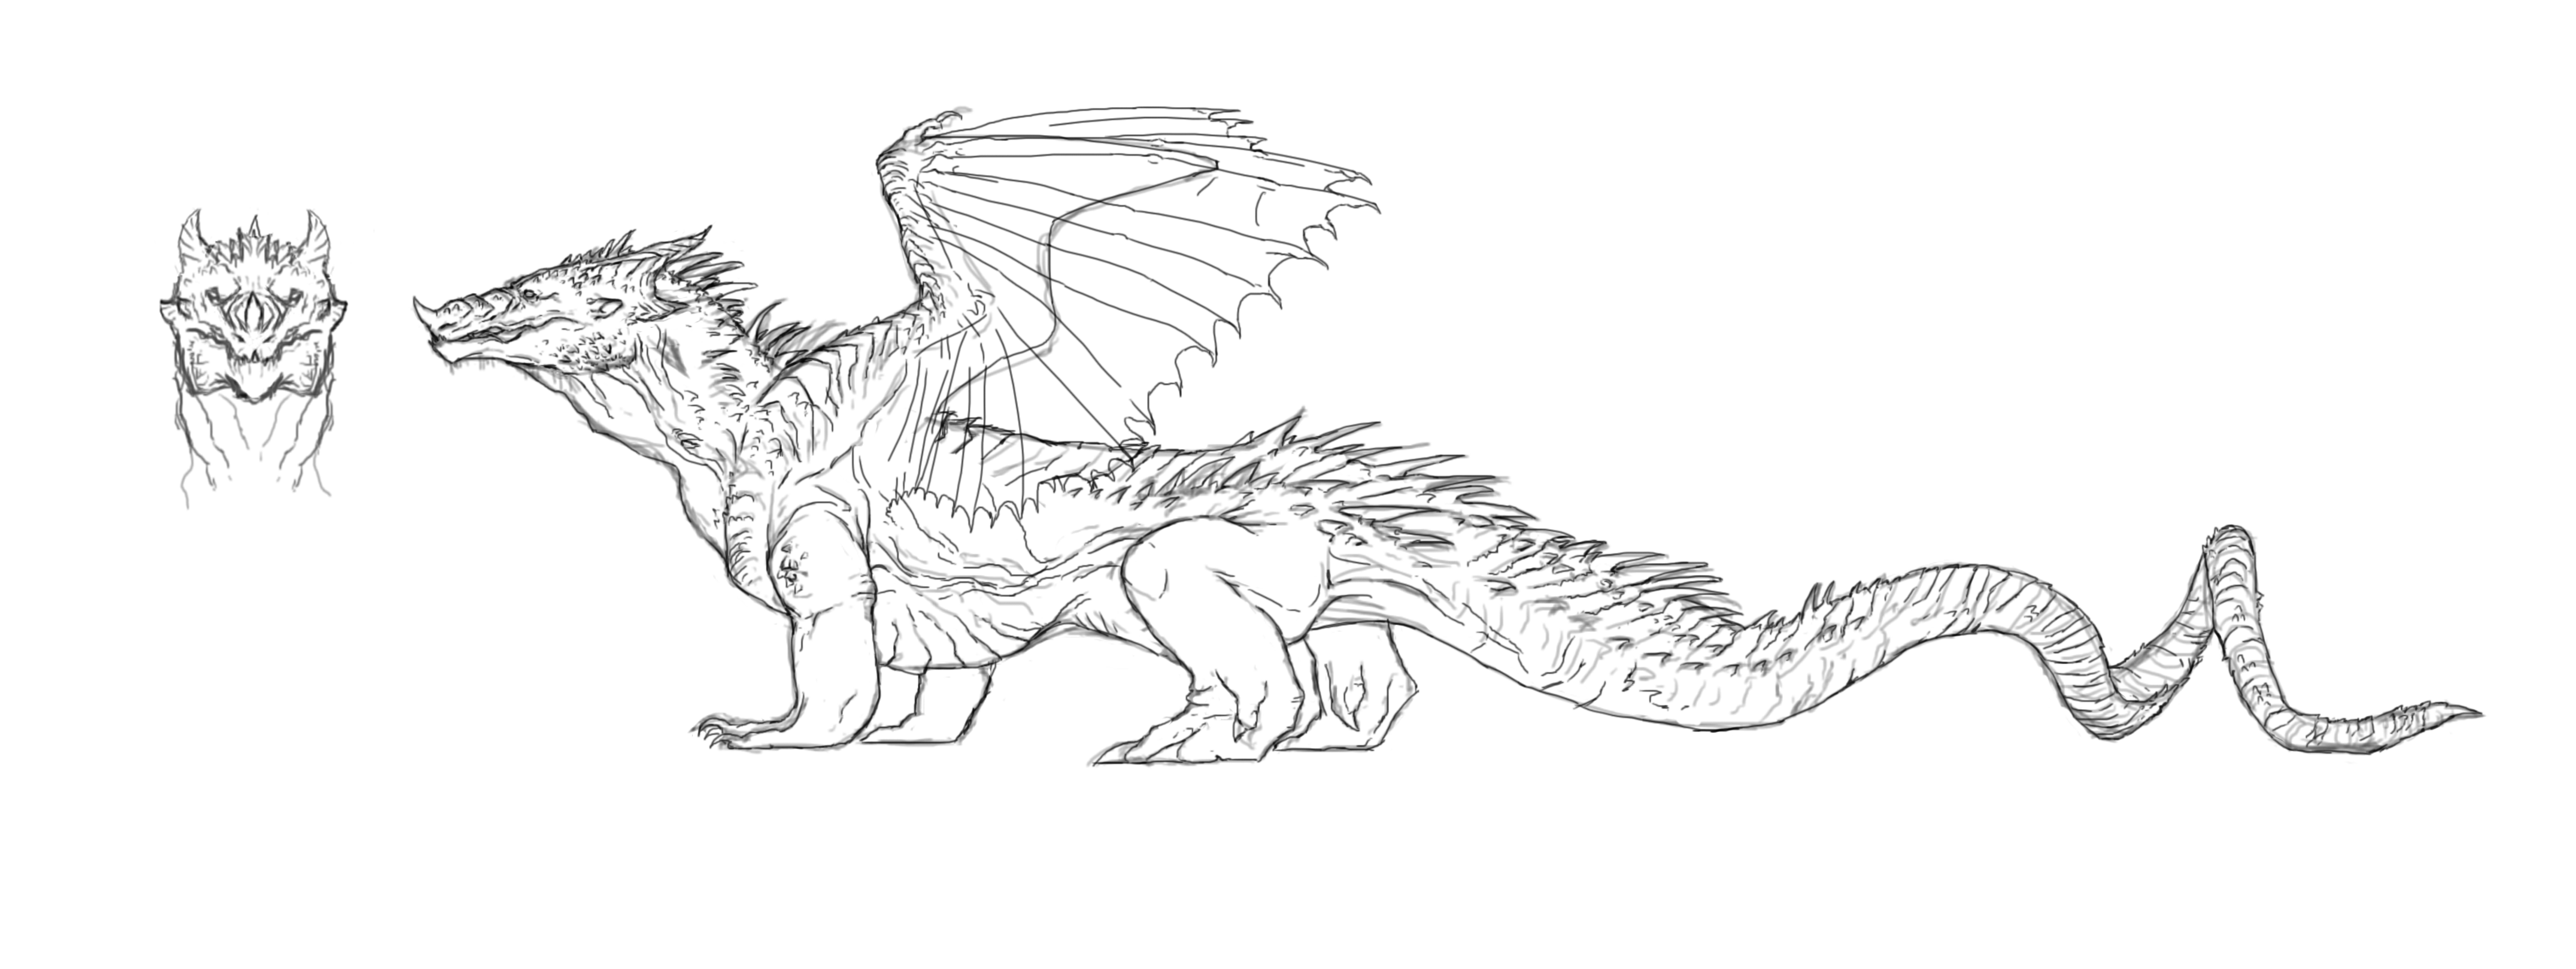 Next Are The Colors Of The Dragon I Wanted To Go For A Wild, Dark Komodo  Dragon Coloring Pages How Do You Draw